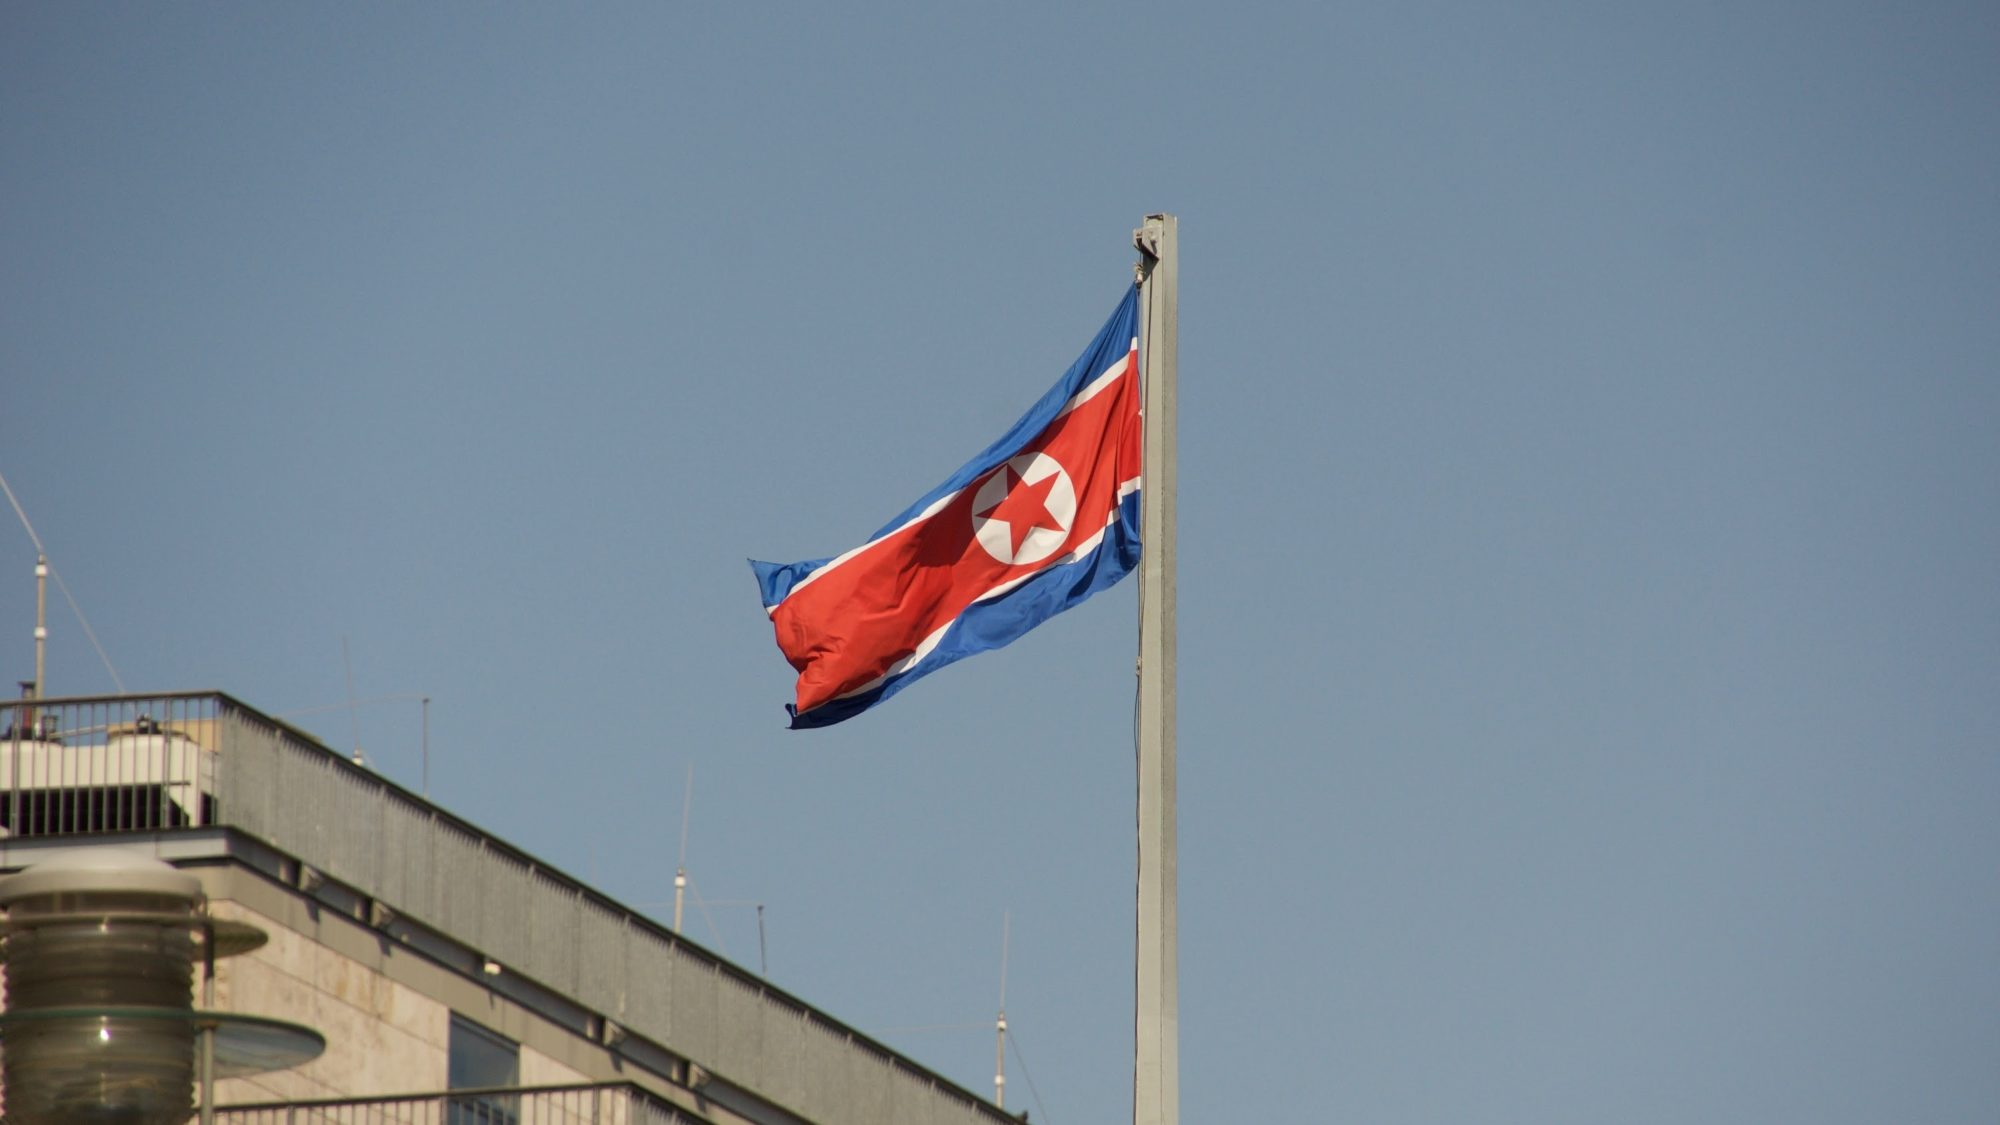 The flag of North Korea flies on a flagpole.